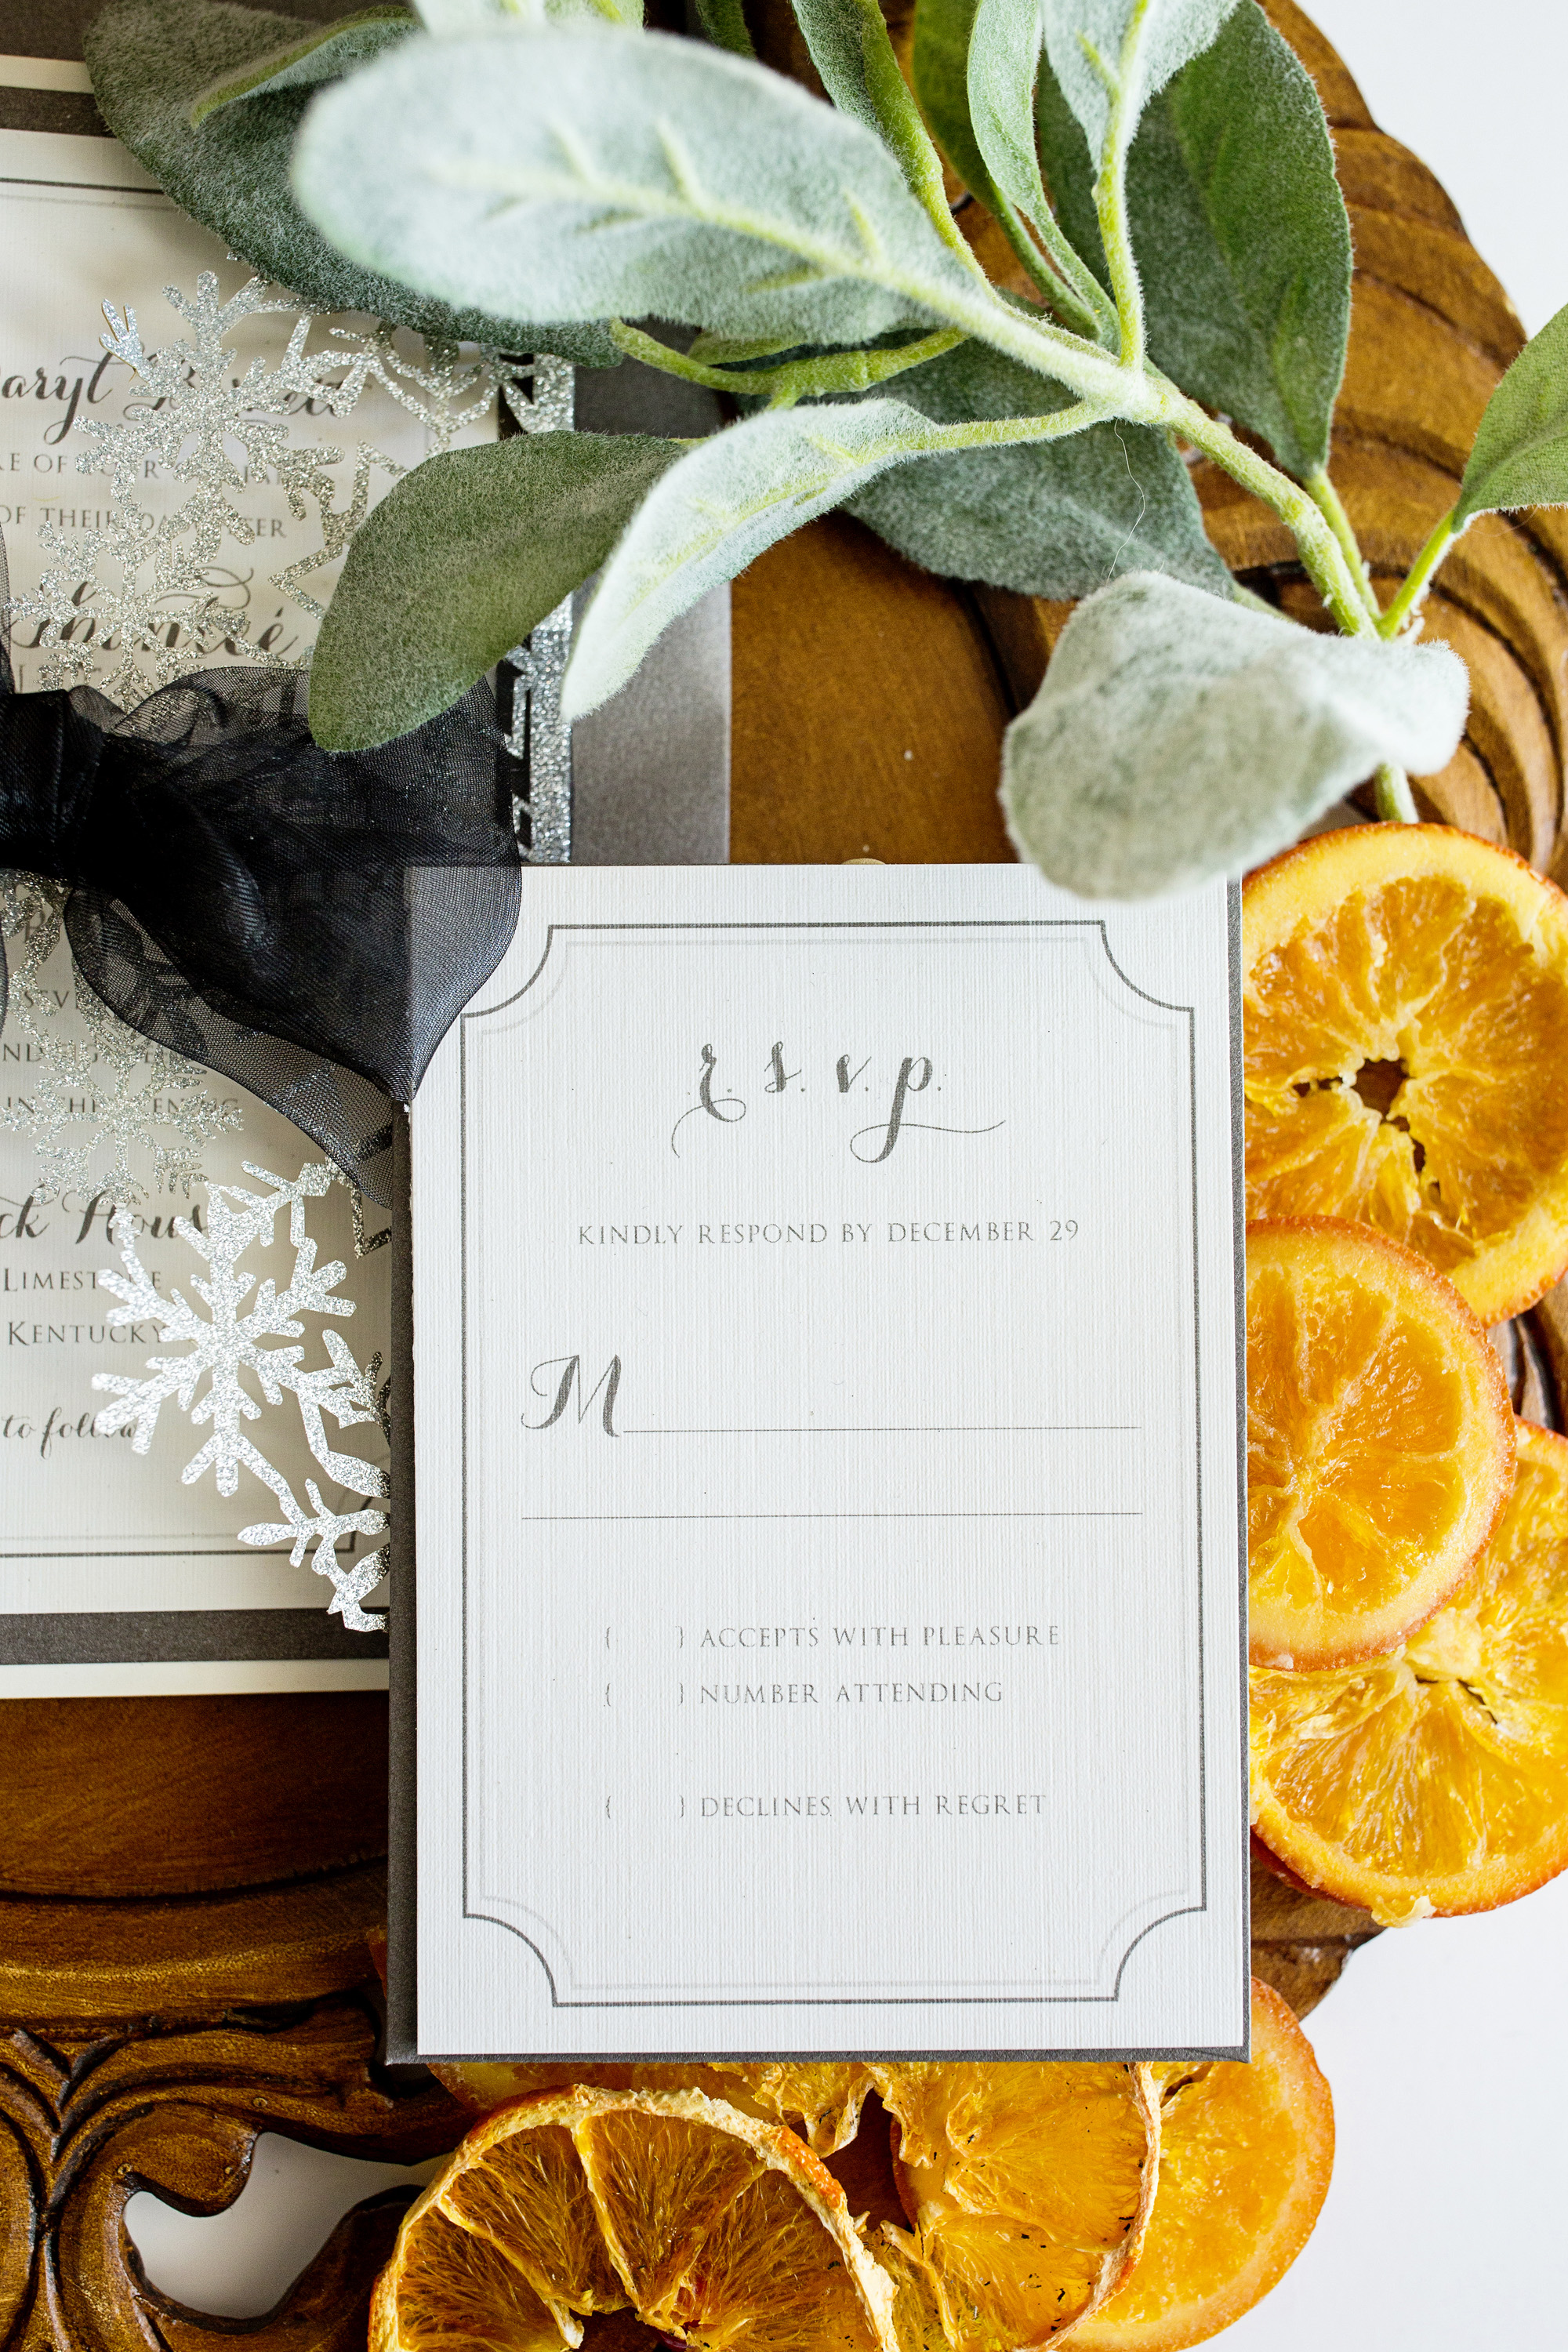 Seriously_Sabrina_Photography_Commercial_Simply_Done_Invites_2019_March_028